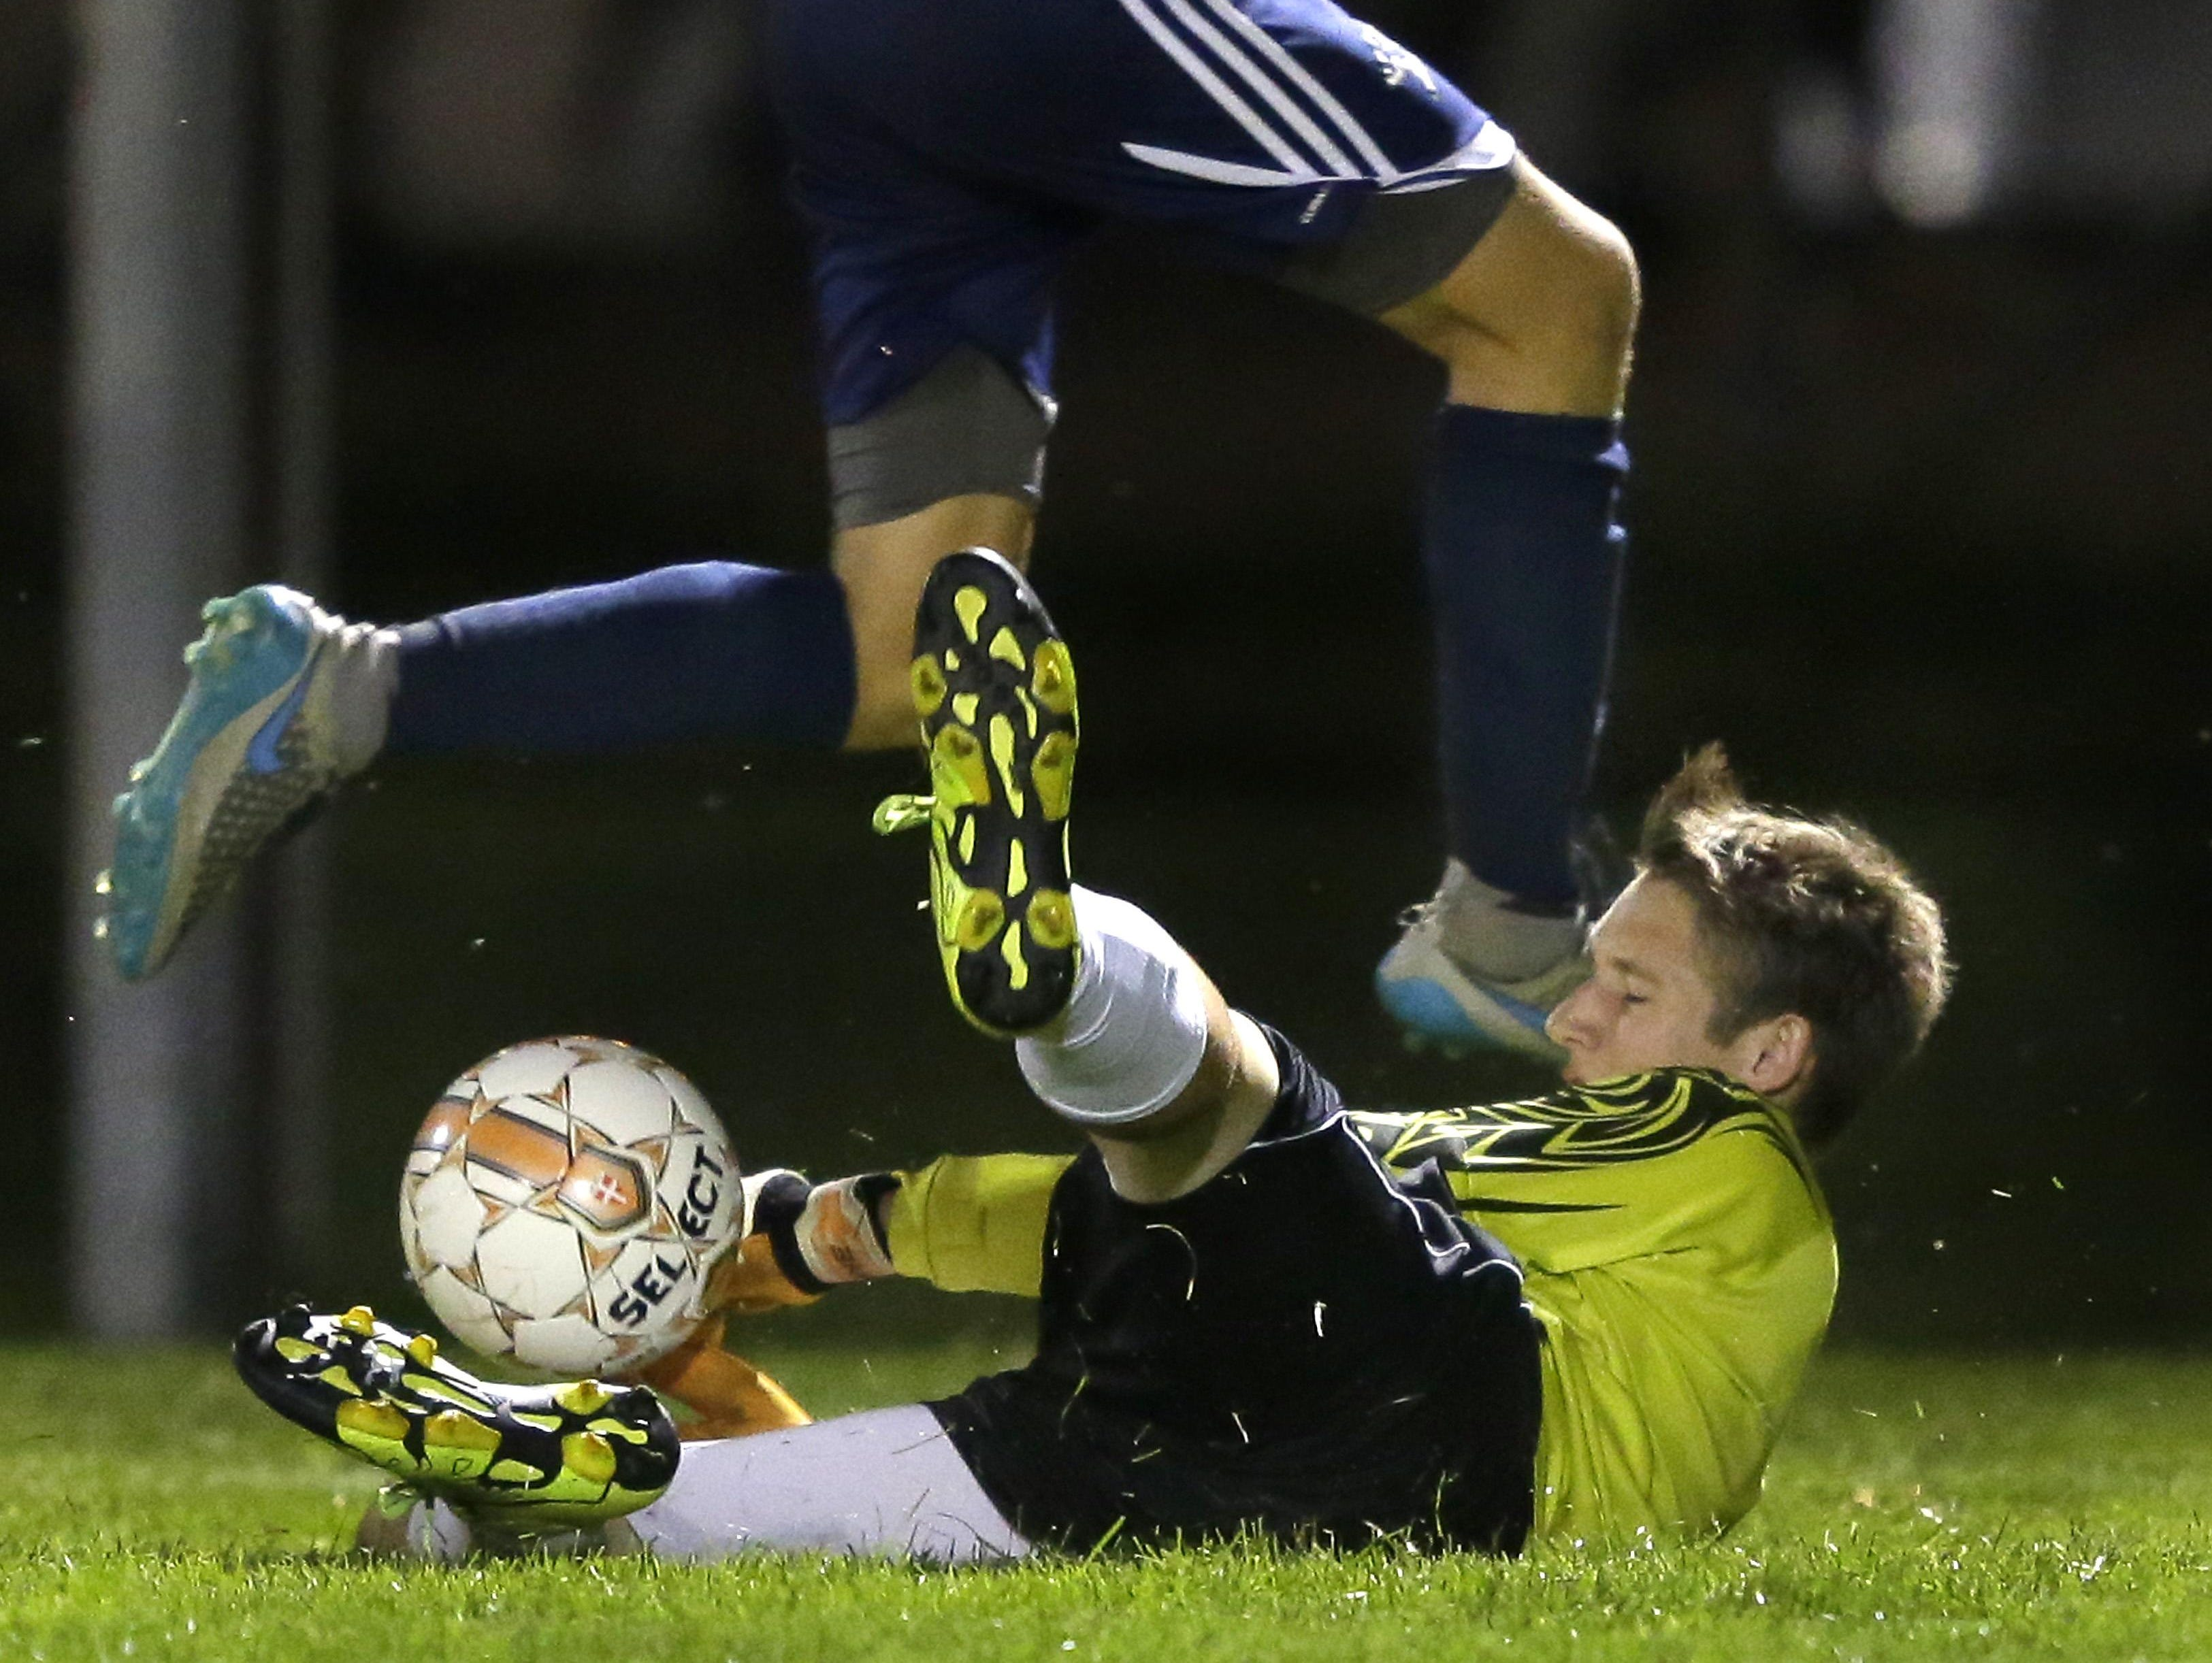 Appleton North's Osman Bajraktarevic leaps over Appleton West goalie Bryant Schisel during their Fox Valley Association soccer game Tuesday at Nienhaus Sports Complex.